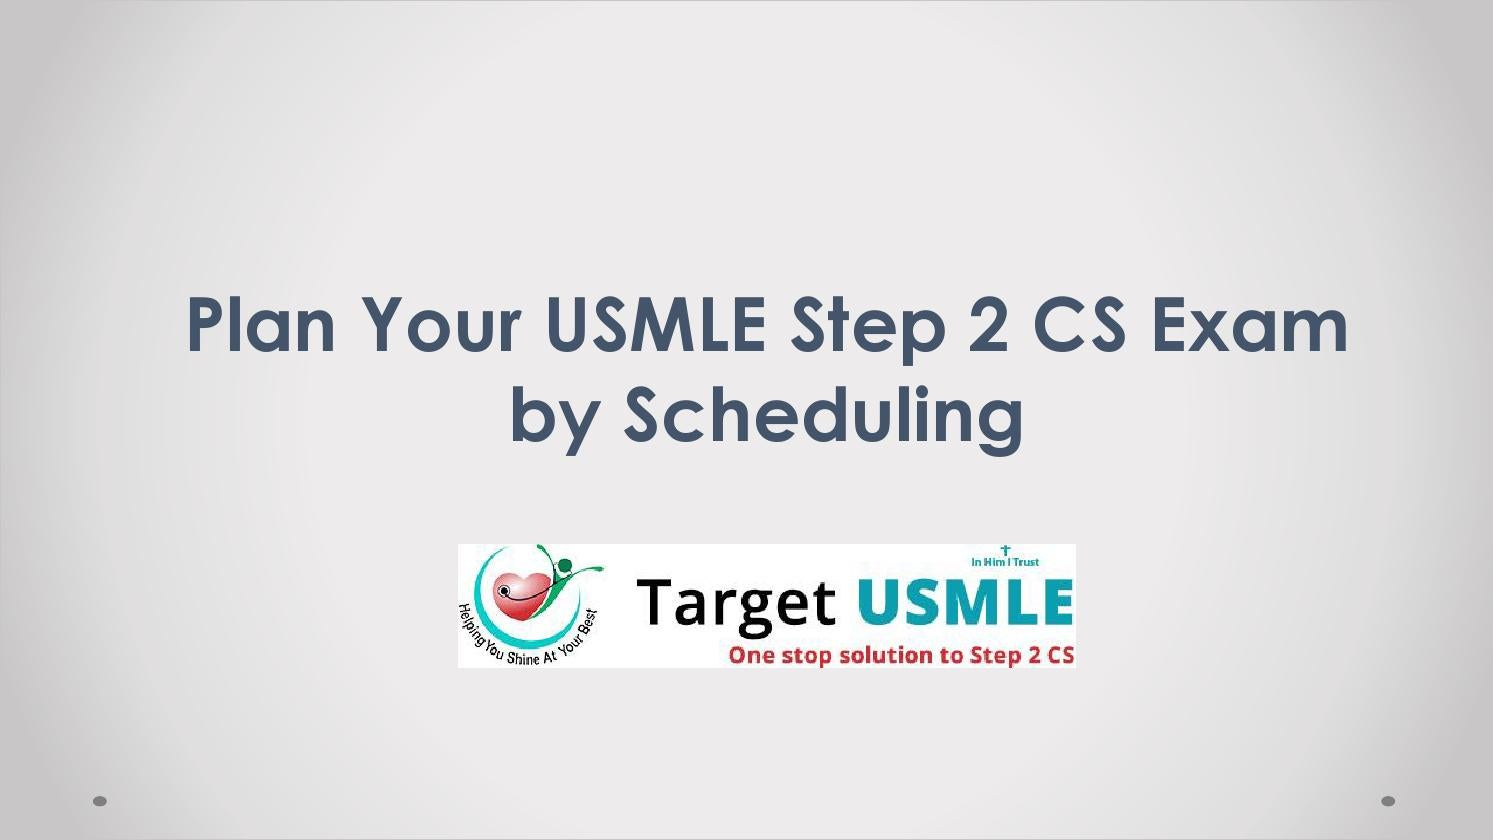 Plan Your USMLE Step 2 CS Exam by Scheduling by targetusmle